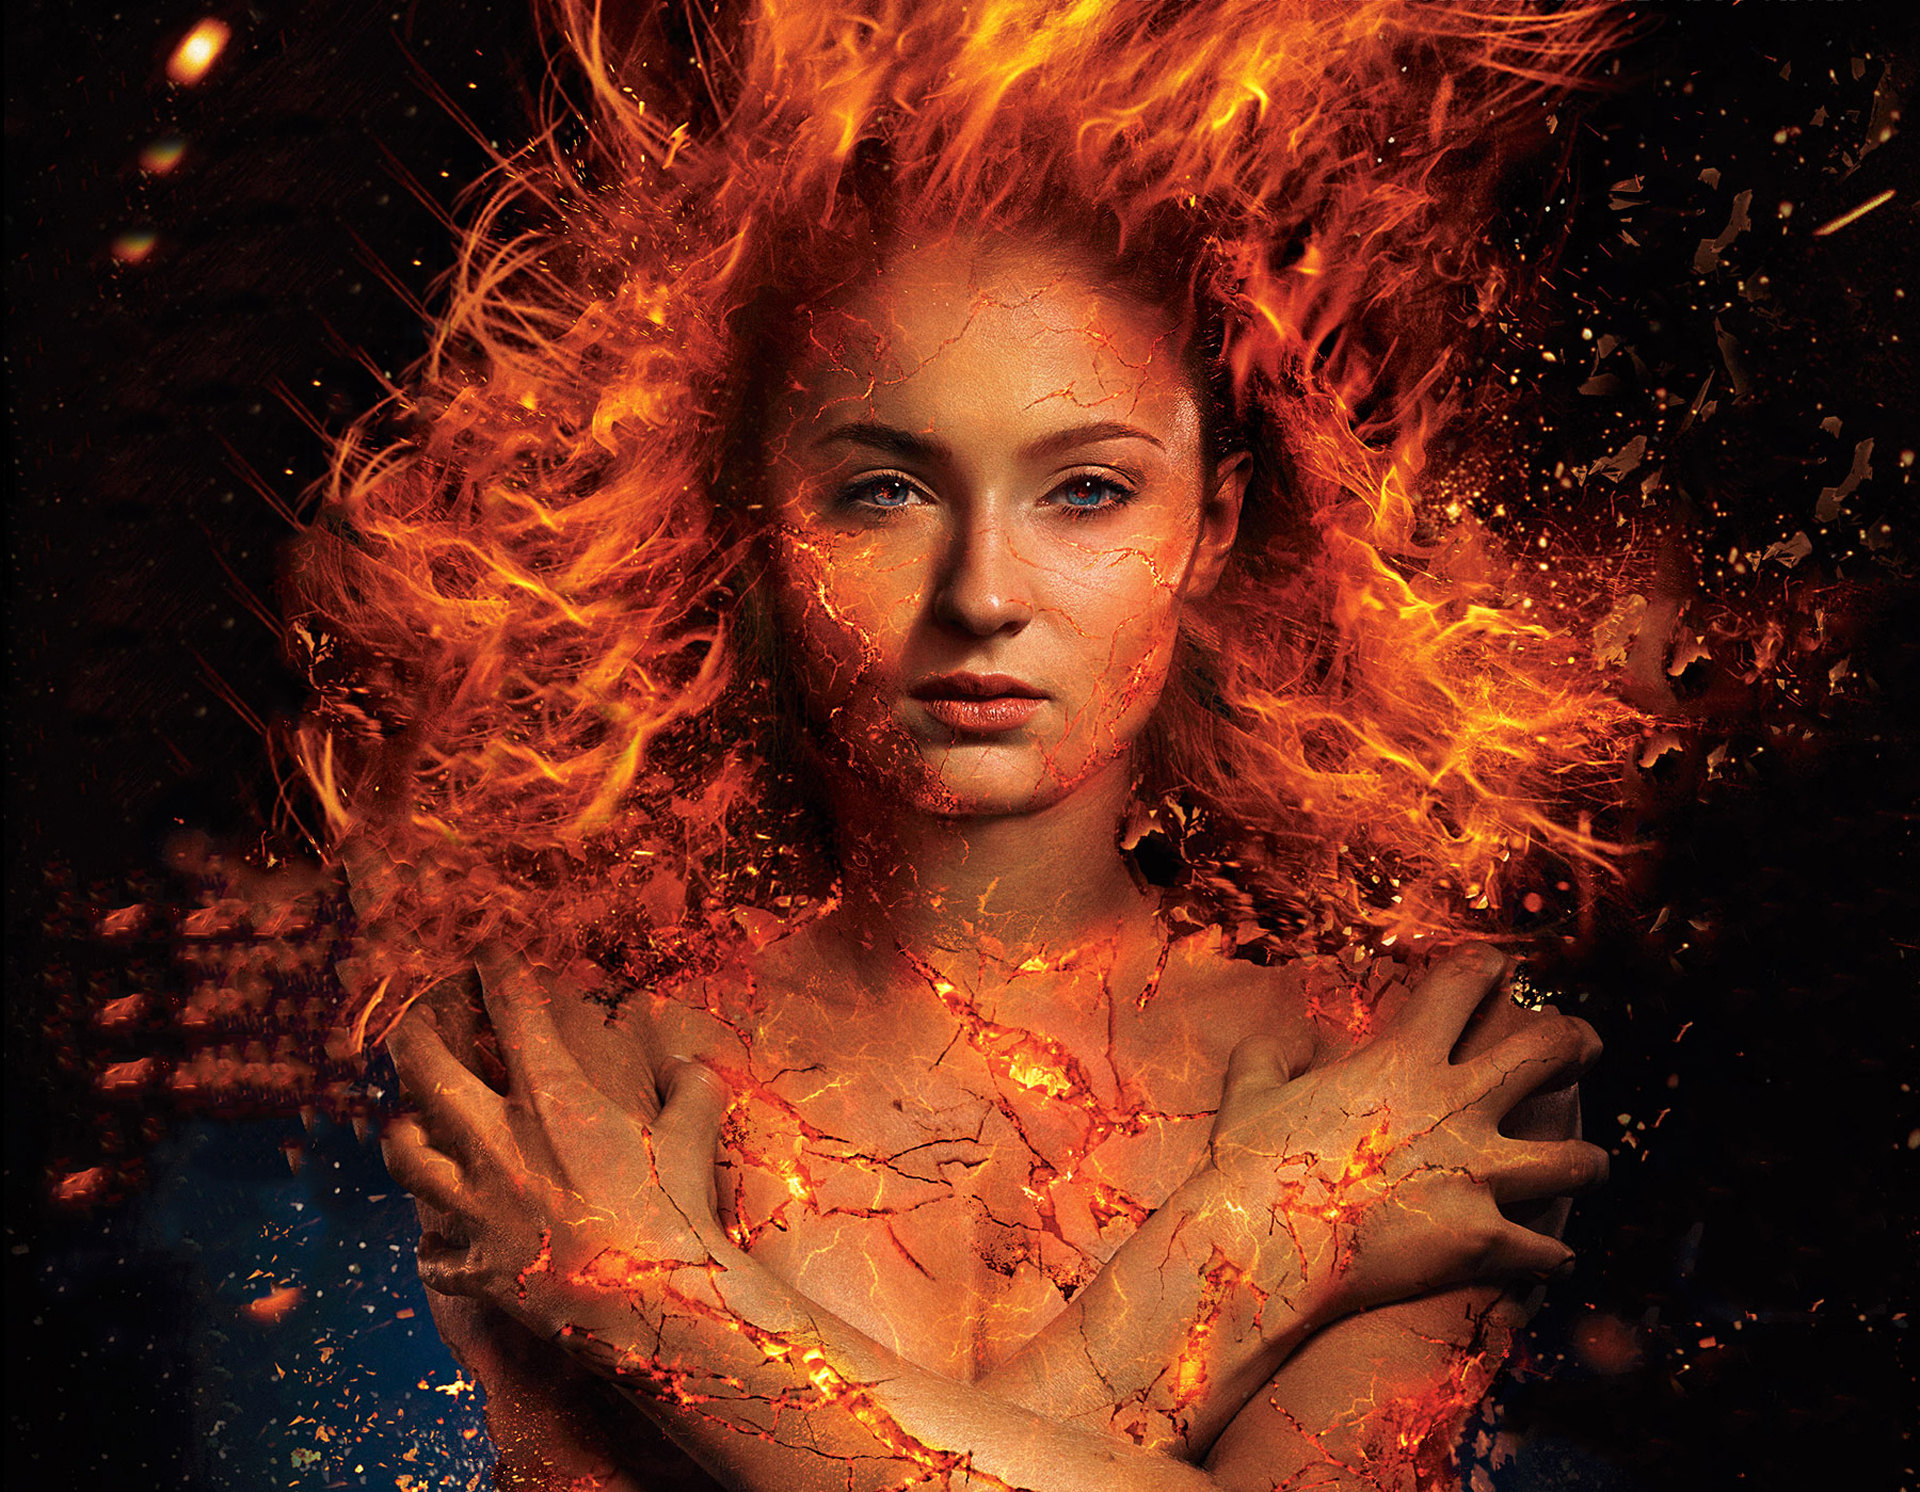 sophie turner in x men dark phoenix 4k 1547506926 - Sophie Turner In X Men Dark Phoenix 4k - x men dark phoenix wallpapers, sophie turner wallpapers, movies wallpapers, hd-wallpapers, dark phoenix wallpapers, 2019 movies wallpapers